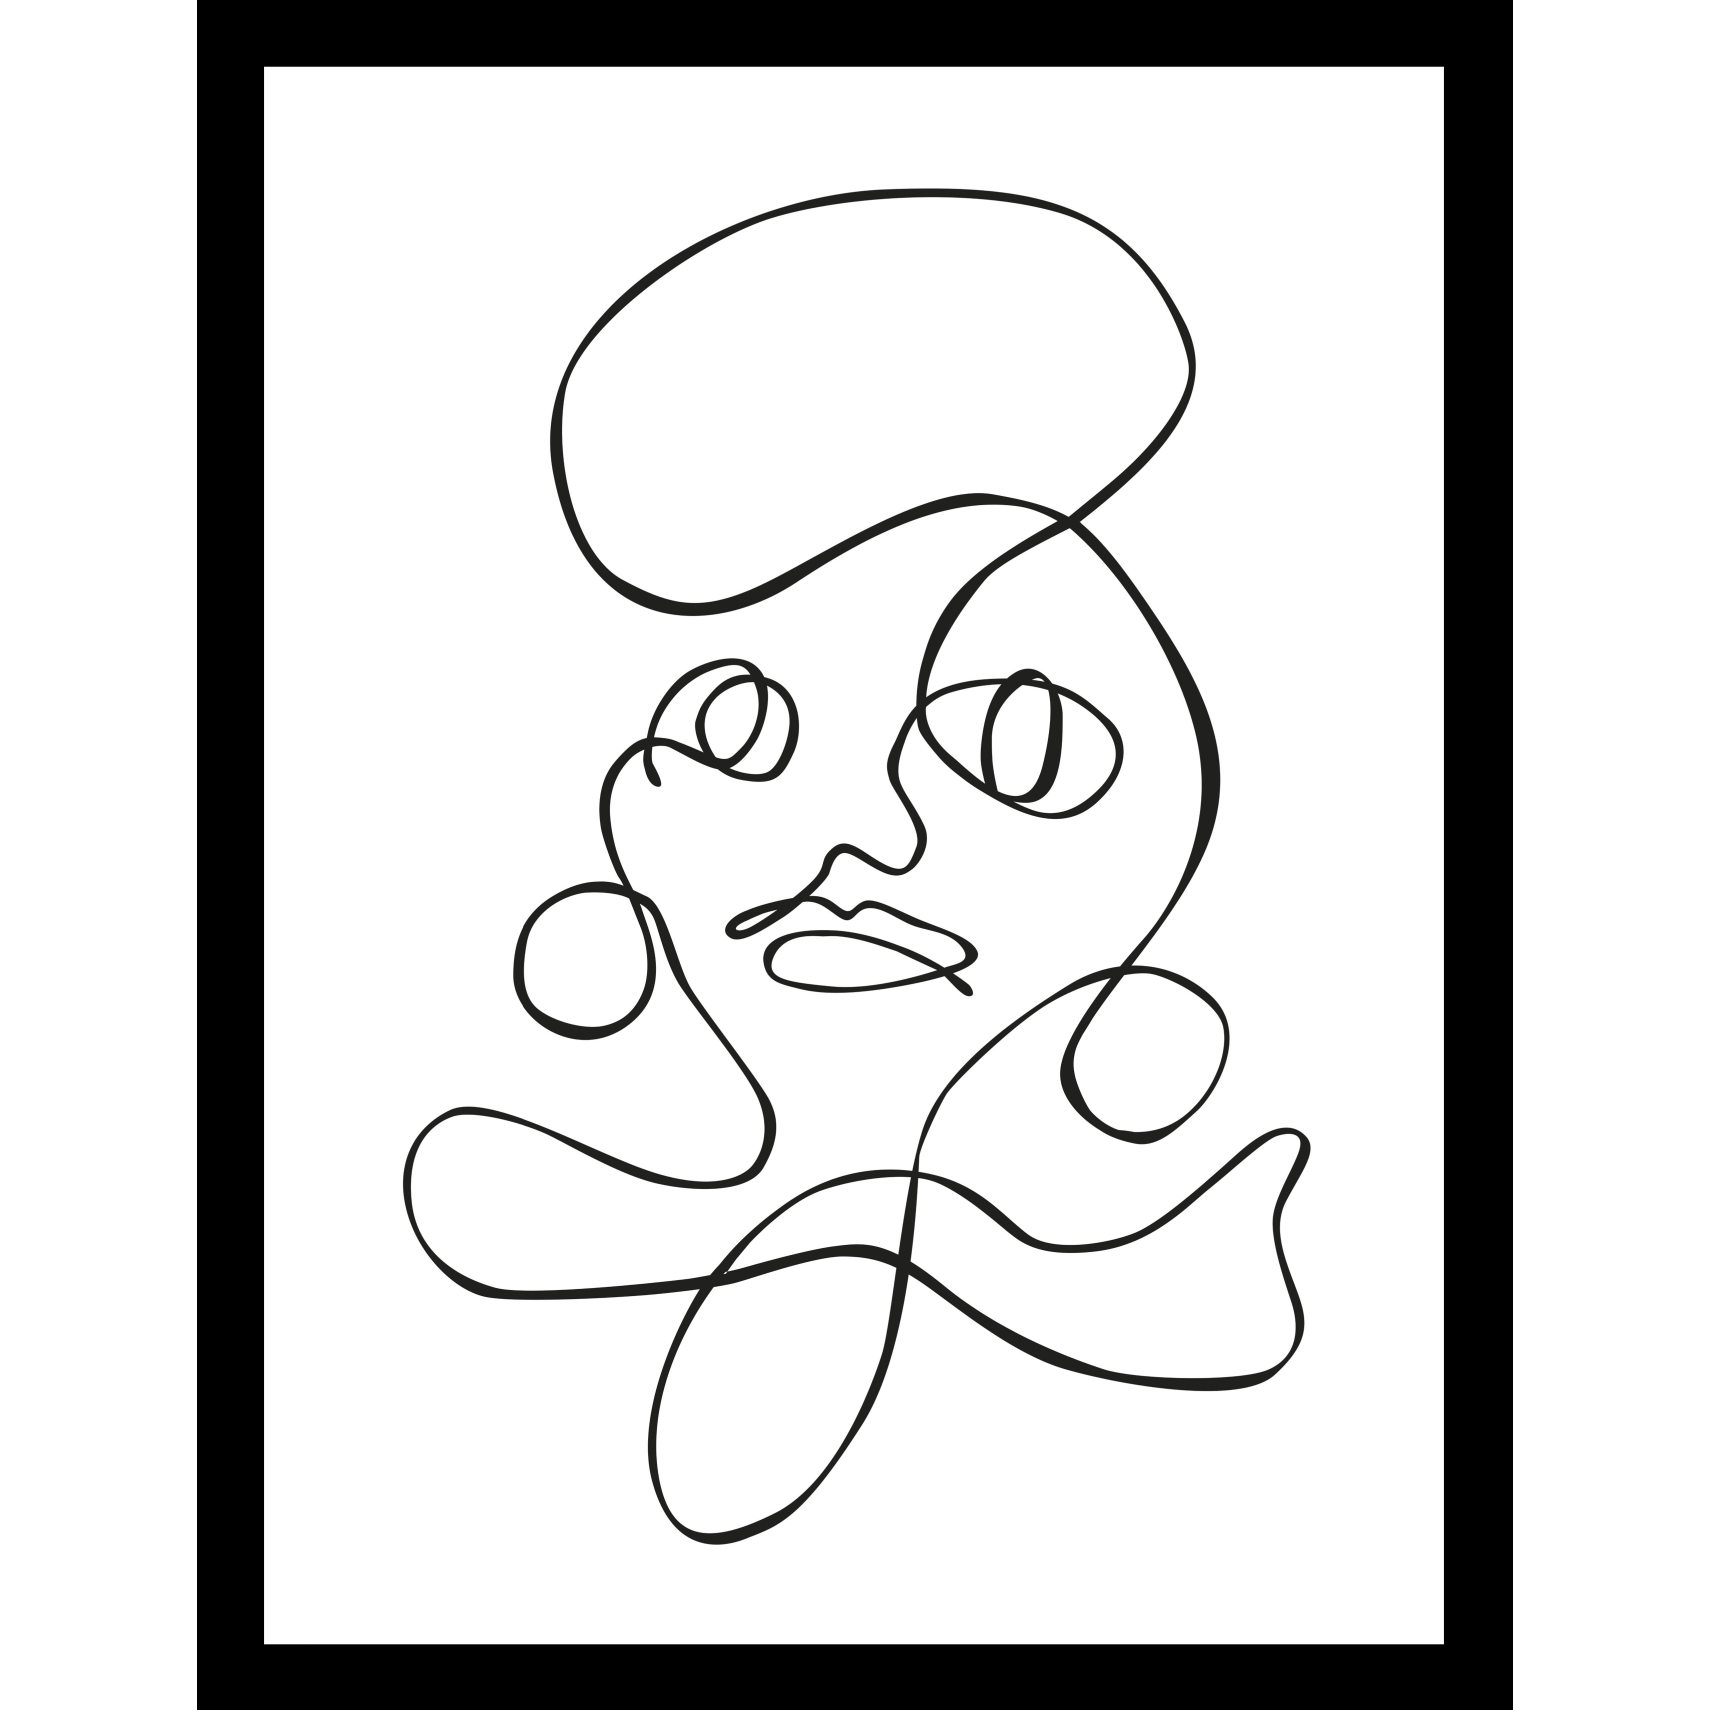 ART GALLERY Plakat 30 x 40 x 1,5 cm - One-line face II og ramme i 15 mm sort fyrretræ